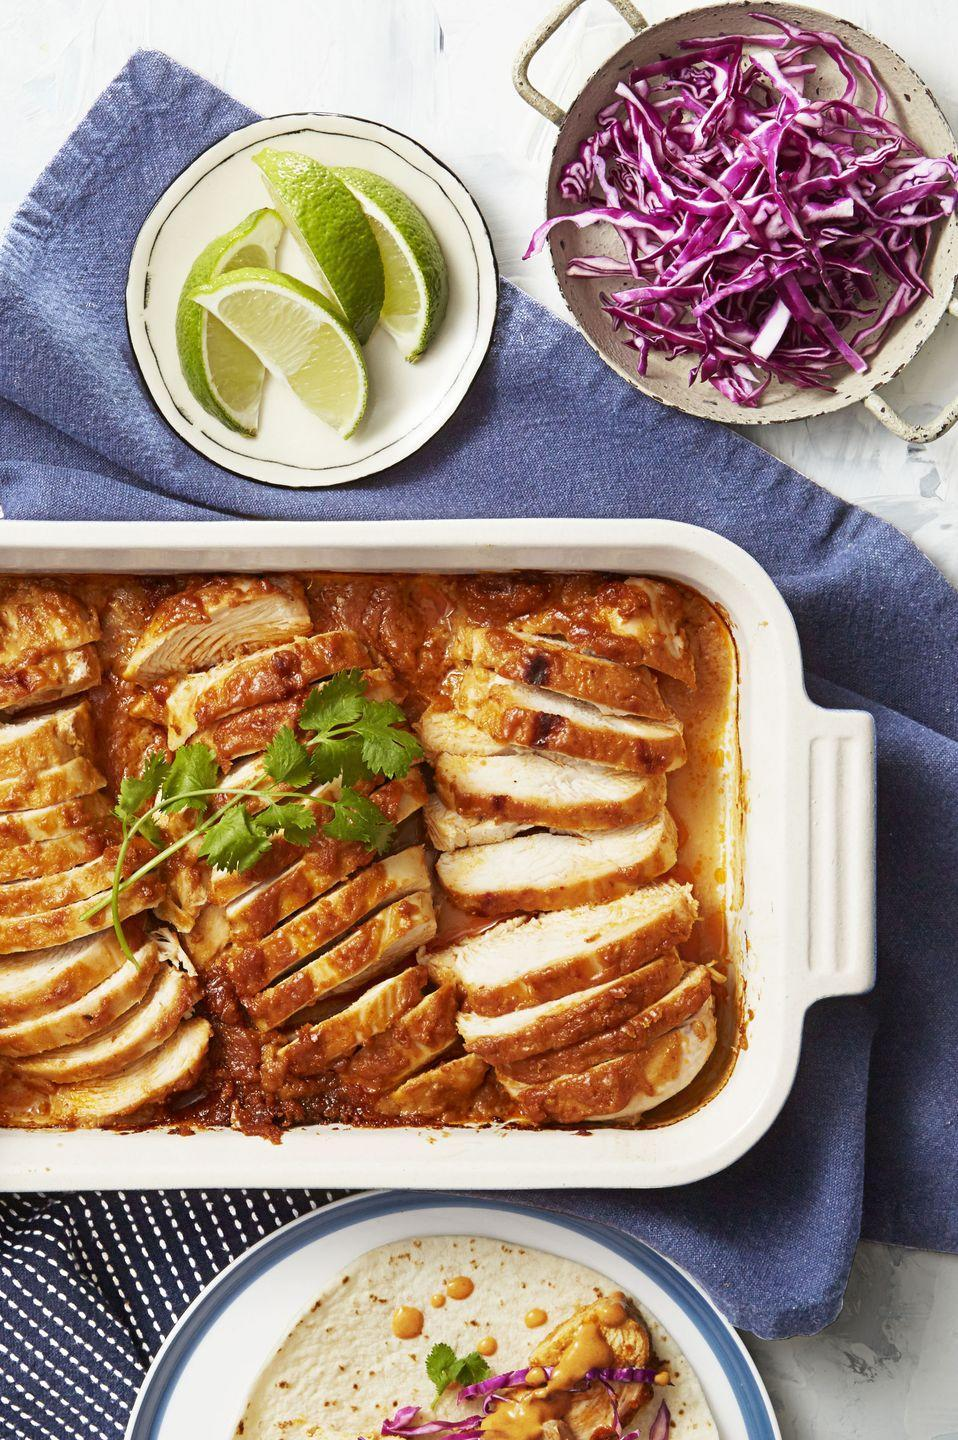 """<p>These Southeast Asian-inspired fixings will forever change the way you do Taco Night. </p><p><a href=""""https://www.goodhousekeeping.com/food-recipes/easy/a35261/smoky-peanut-chicken-tacos/"""" rel=""""nofollow noopener"""" target=""""_blank"""" data-ylk=""""slk:Get the recipe for Smoky Peanut Chicken Tacos »"""" class=""""link rapid-noclick-resp""""><em>Get the recipe for Smoky Peanut Chicken Tacos »</em></a></p>"""